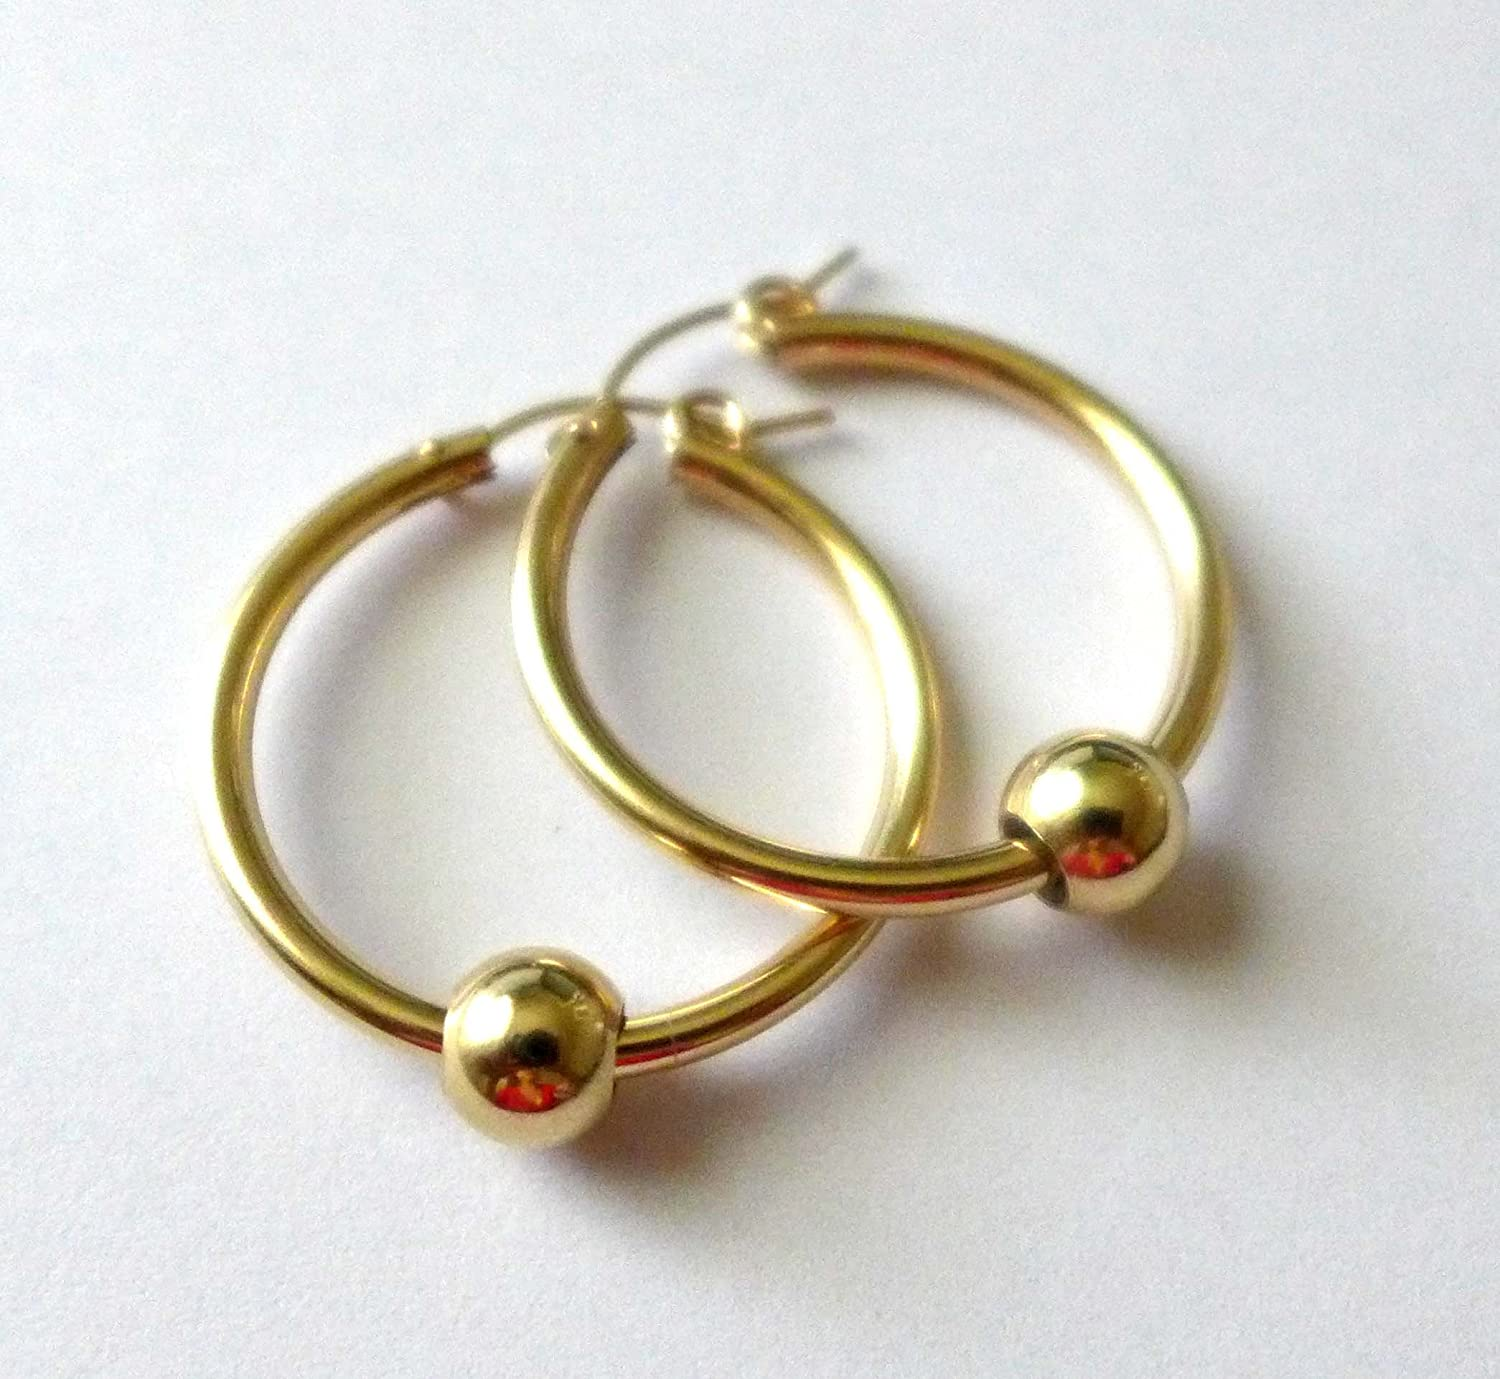 1.125 28mm Cape Cod Gold Filled 2.3mm Round hoop earrings EB05